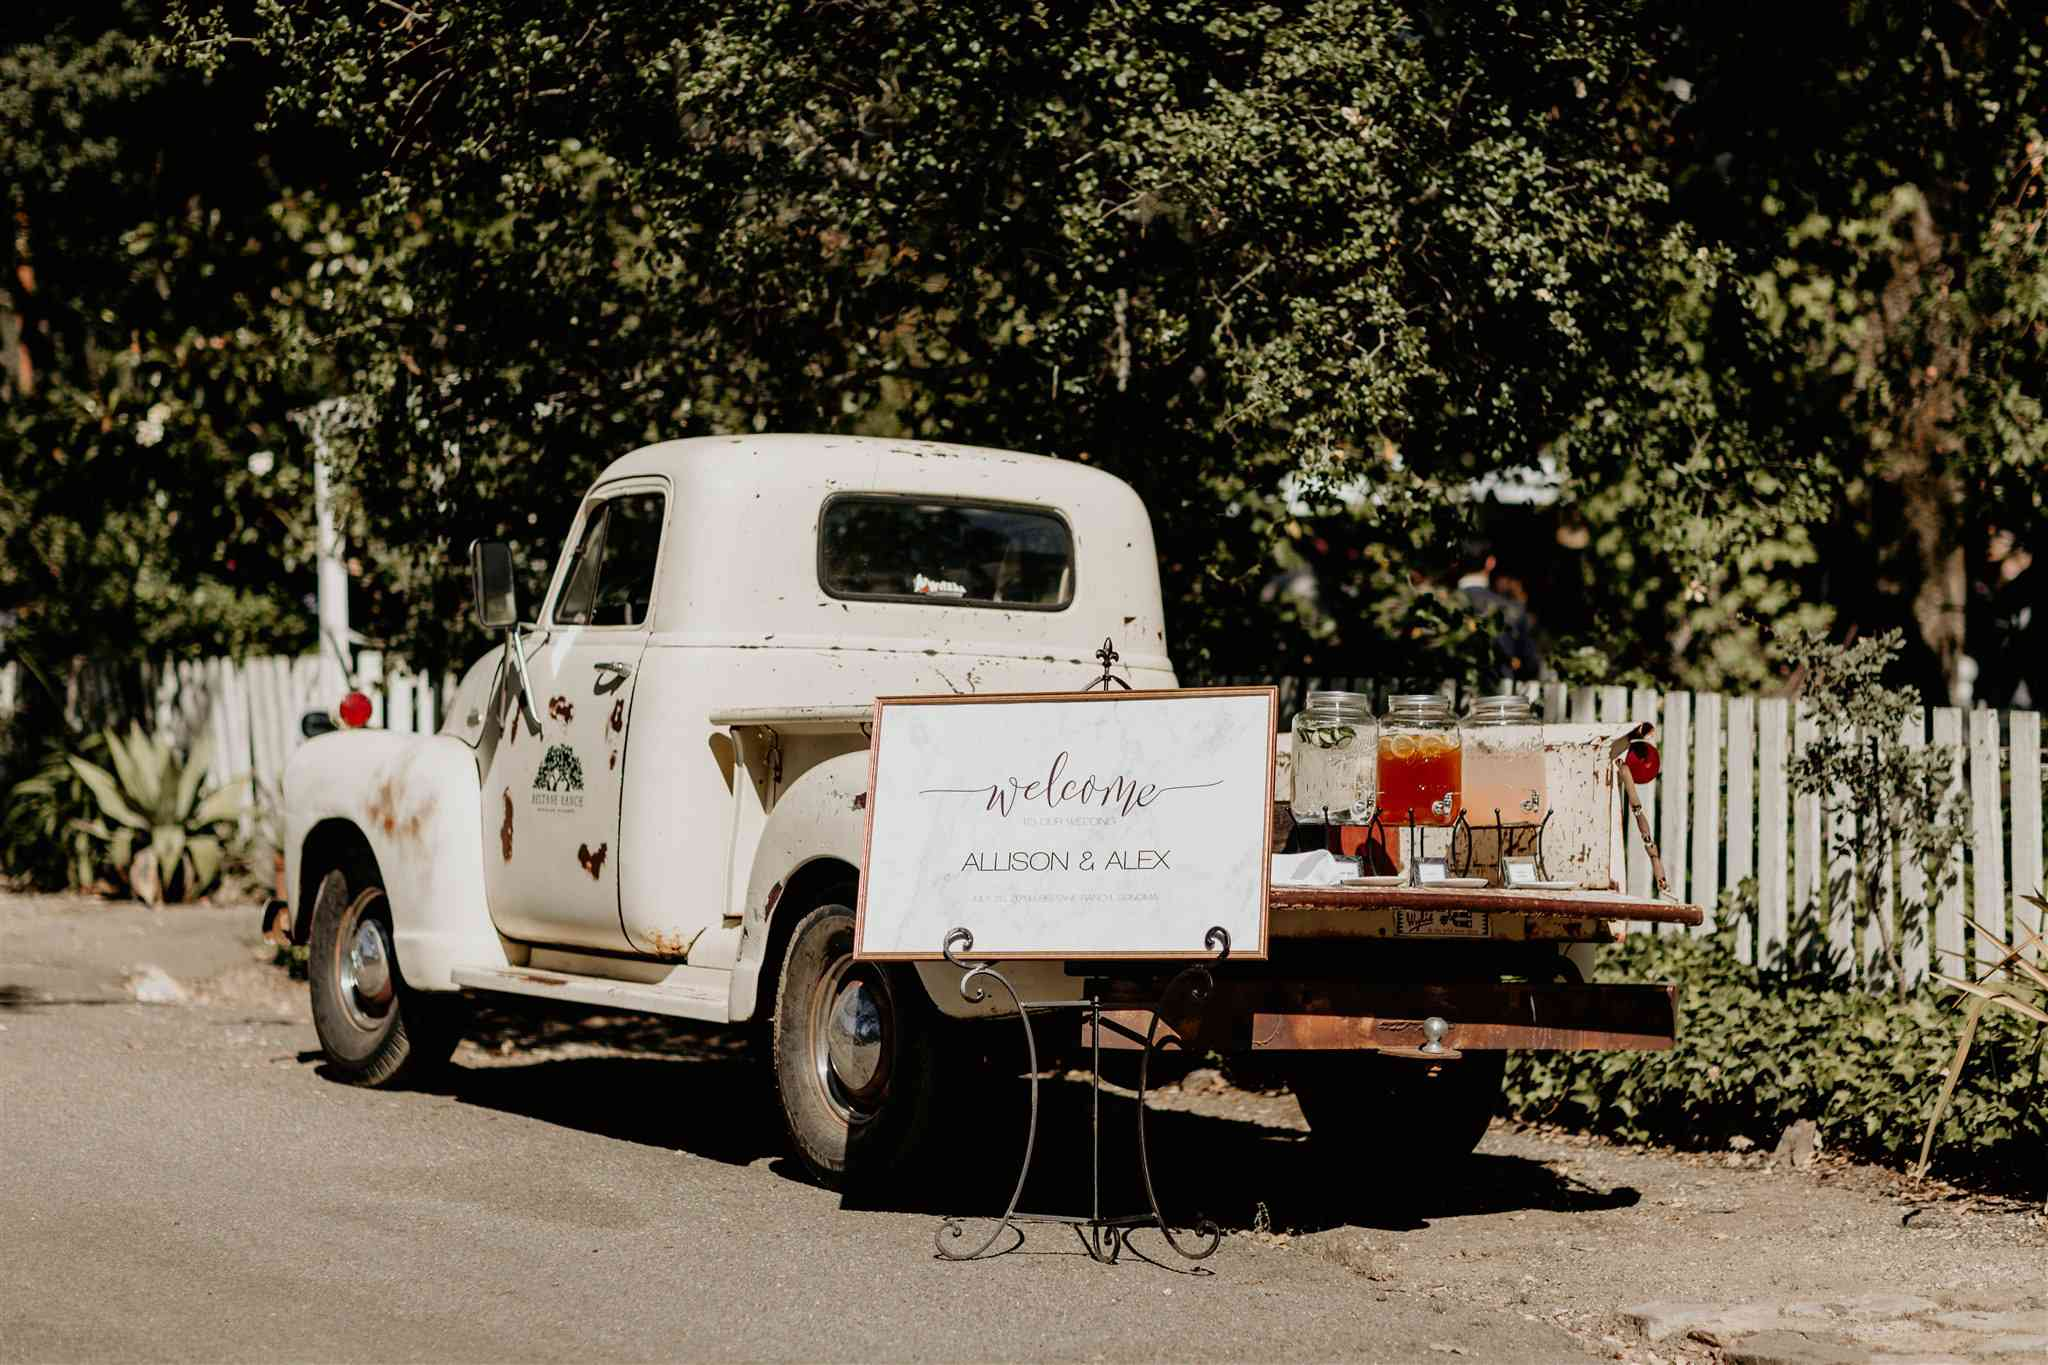 Refreshment station on the bed of a vintage truck